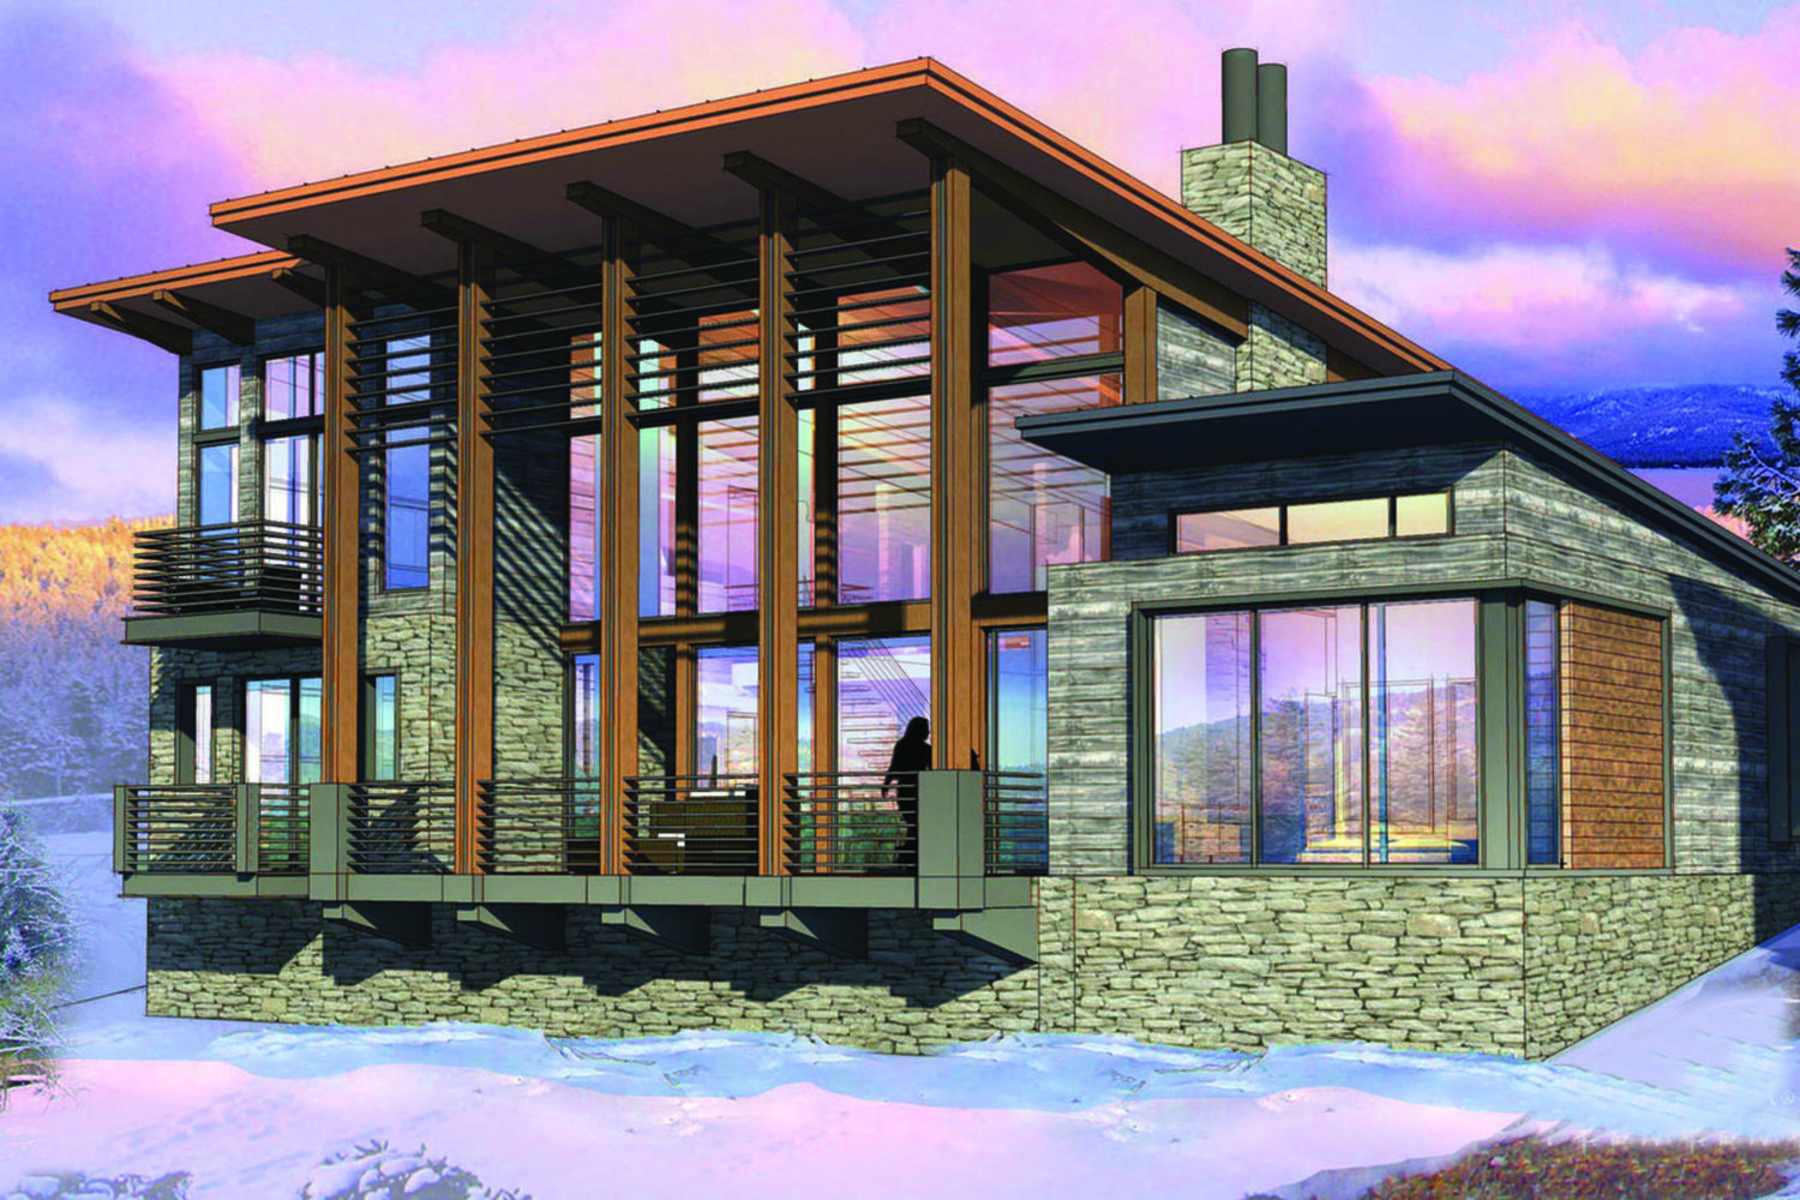 Moradia para Venda às New Nicklaus Golf Cabin Promontory 6684 Golden Bear Loop West Park City, Utah, 84098 Estados Unidos